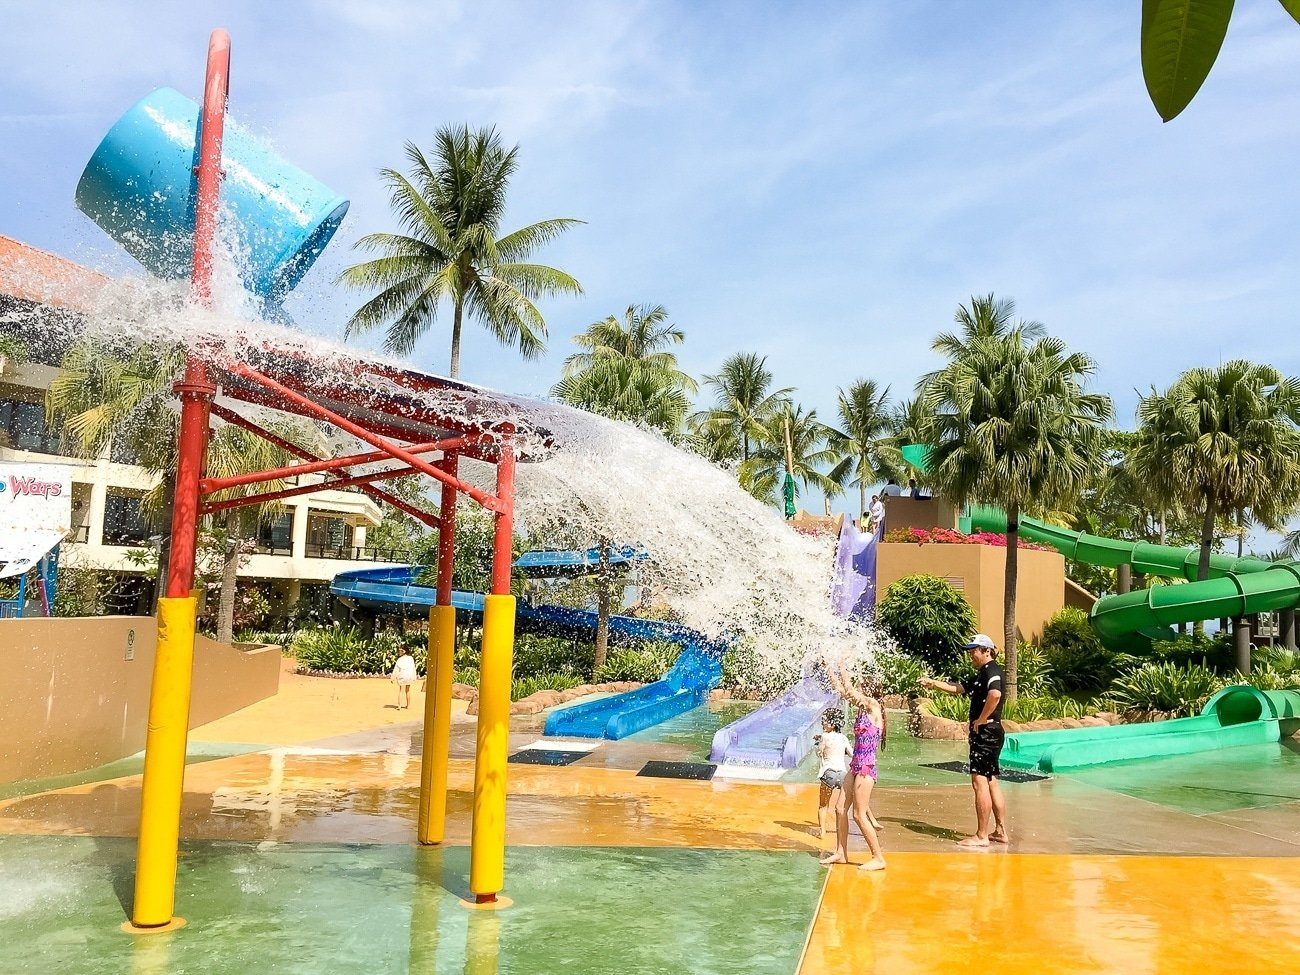 Kids love the water play area at Shangri-la's Tanjung Aru Resort and Spa in Kota Kinabalu